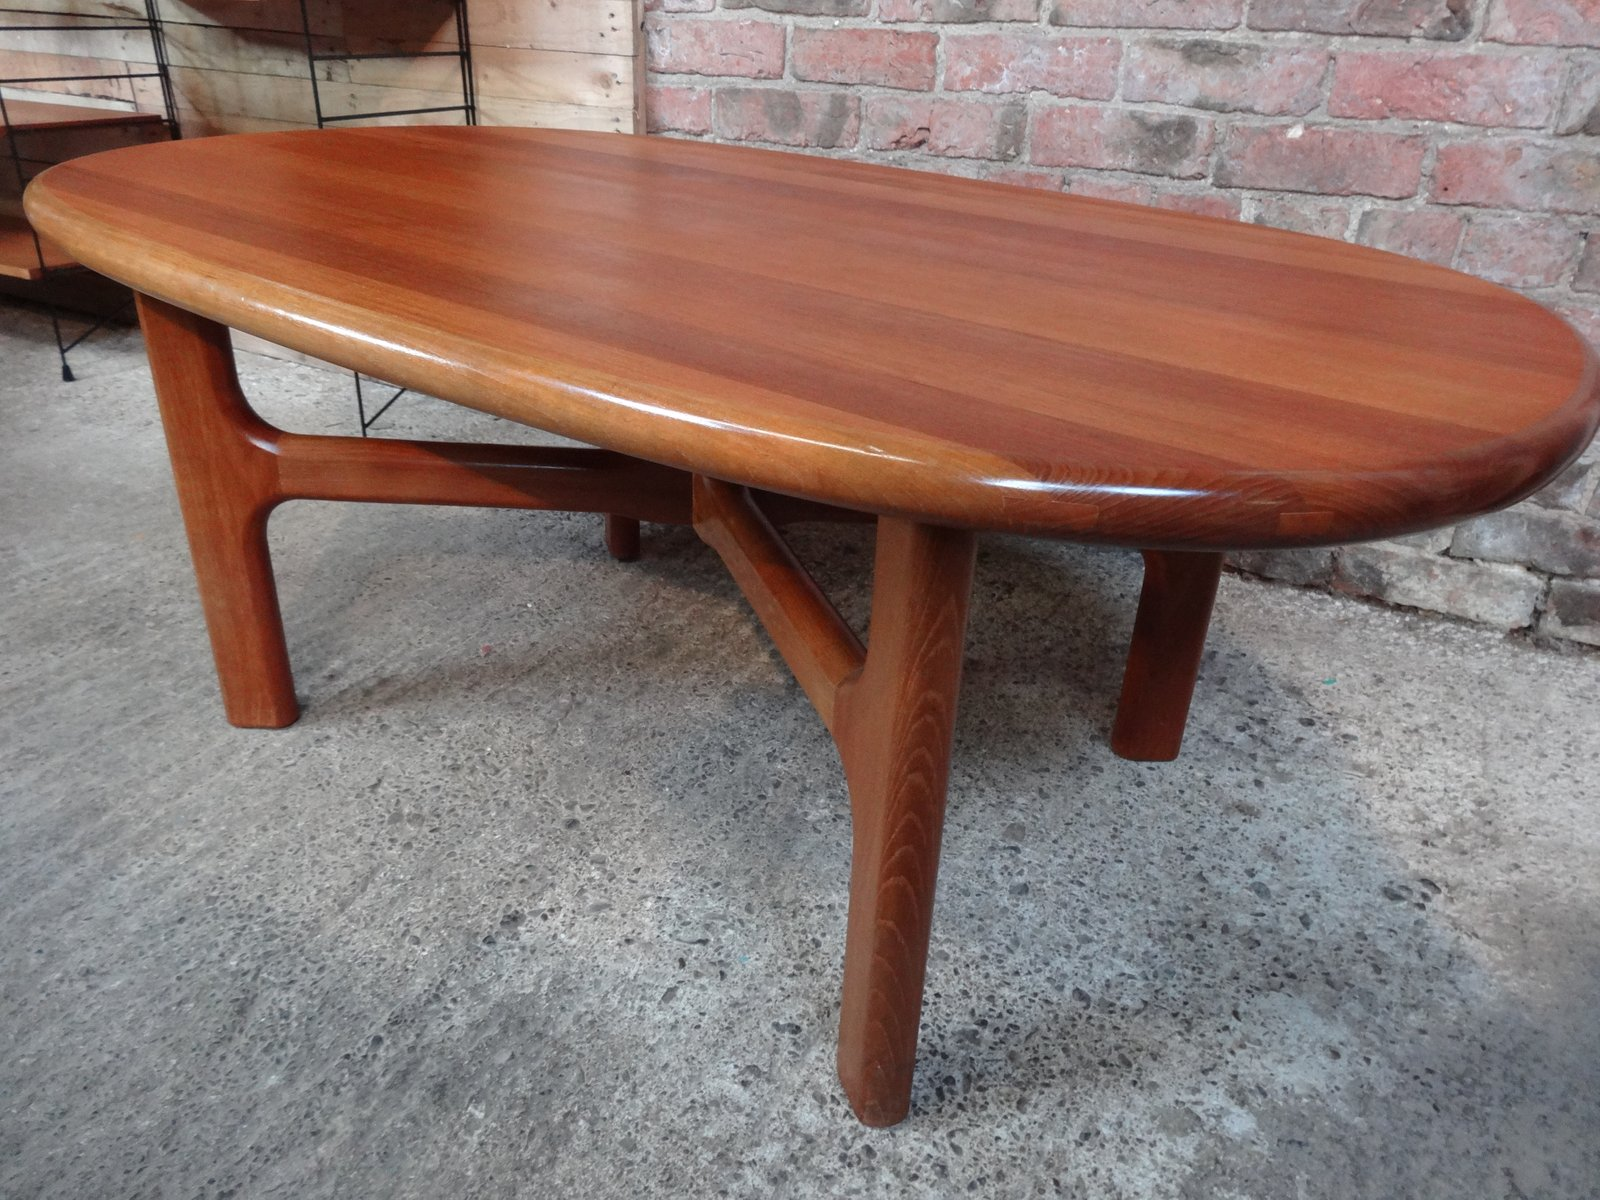 Mid century solid teak coffee table from dyrlund 1970s for sale mid century solid teak coffee table from dyrlund 1970s geotapseo Gallery